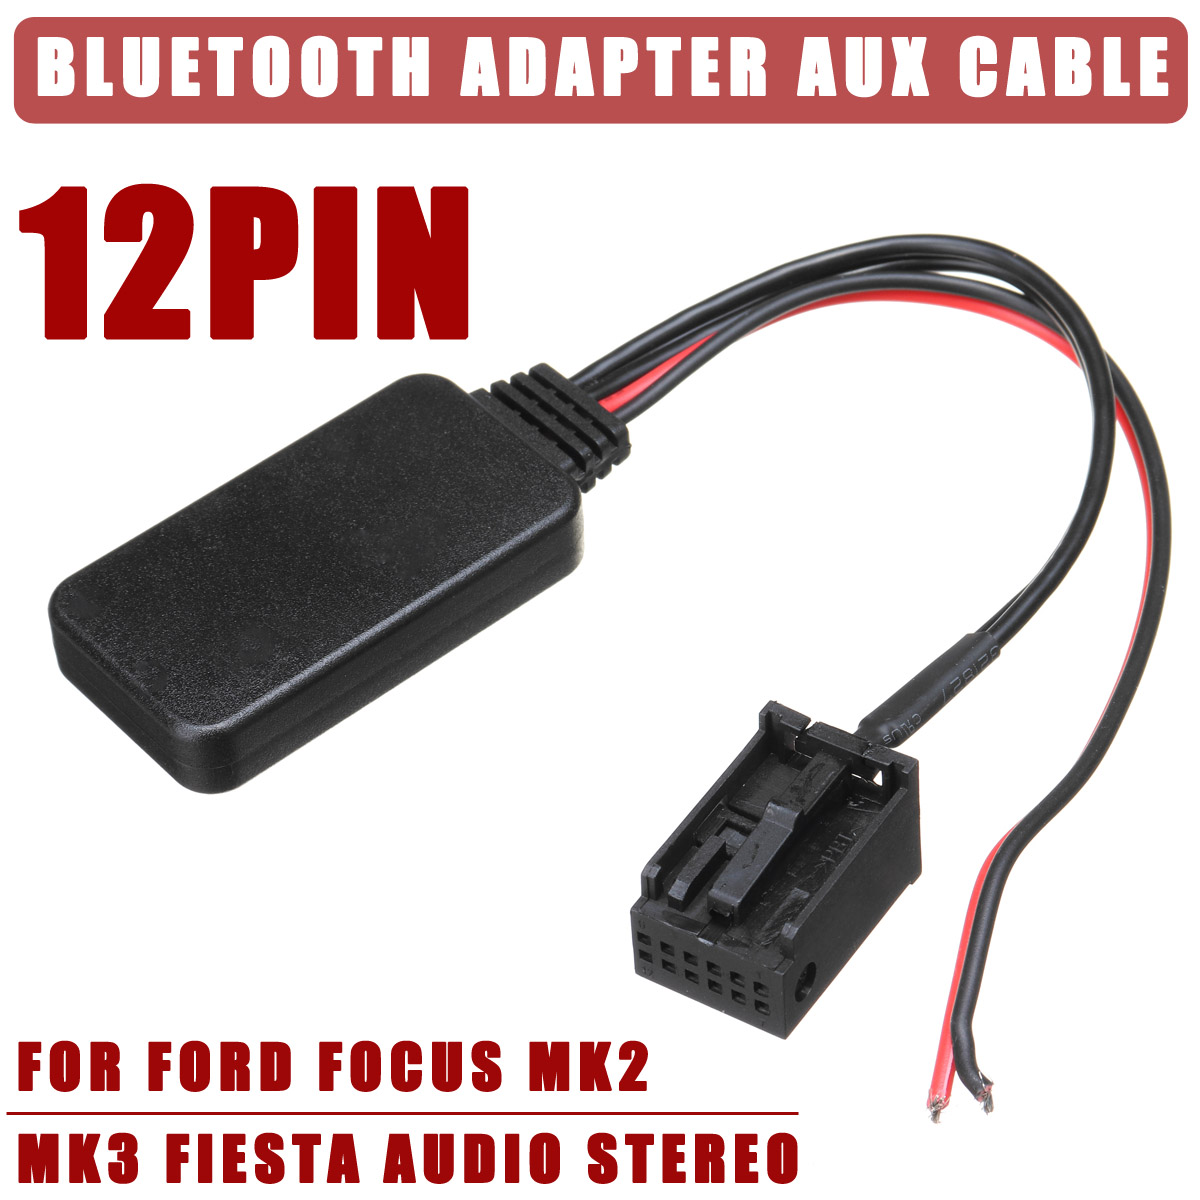 12V 12Pin Rear Port Car Bluetooth Adapter Wireless Audio Stereo Aux Cable Auto Accessories For Ford for Focus Mk2 MK3 for Fiesta 6000cd external aux in cable adapter mp3 audio cable for ford focus fiesta 6000 cd